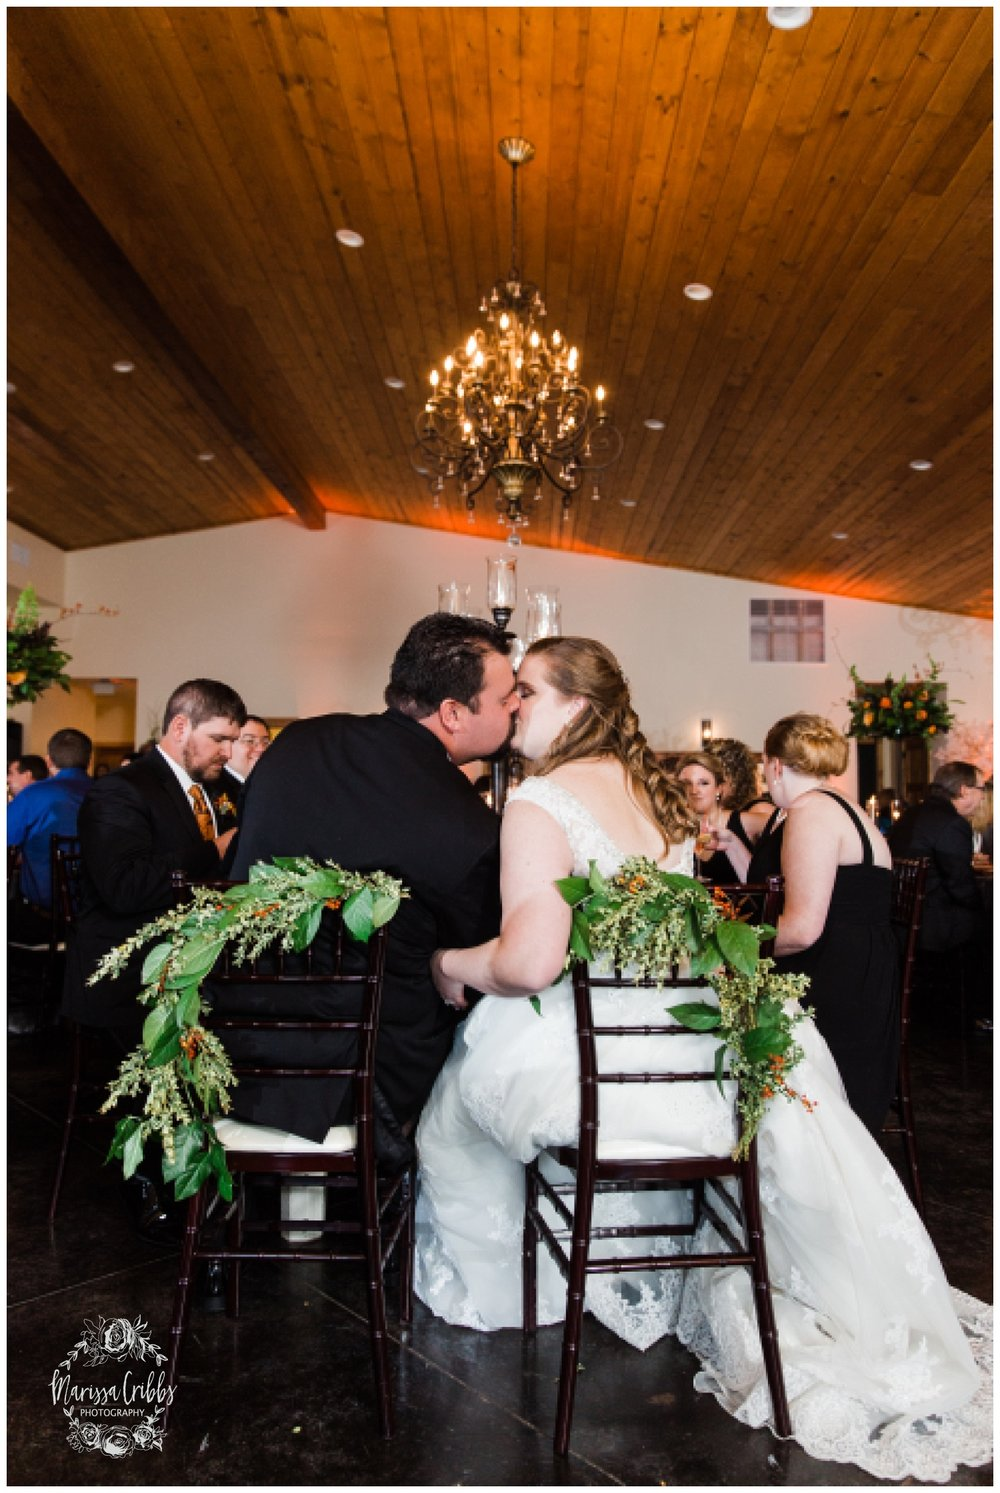 KELLY WEDDING | VENUE AT WILLOW CREEK | MARISSA CRIBBS PHOTOGRAPHY_3761.jpg